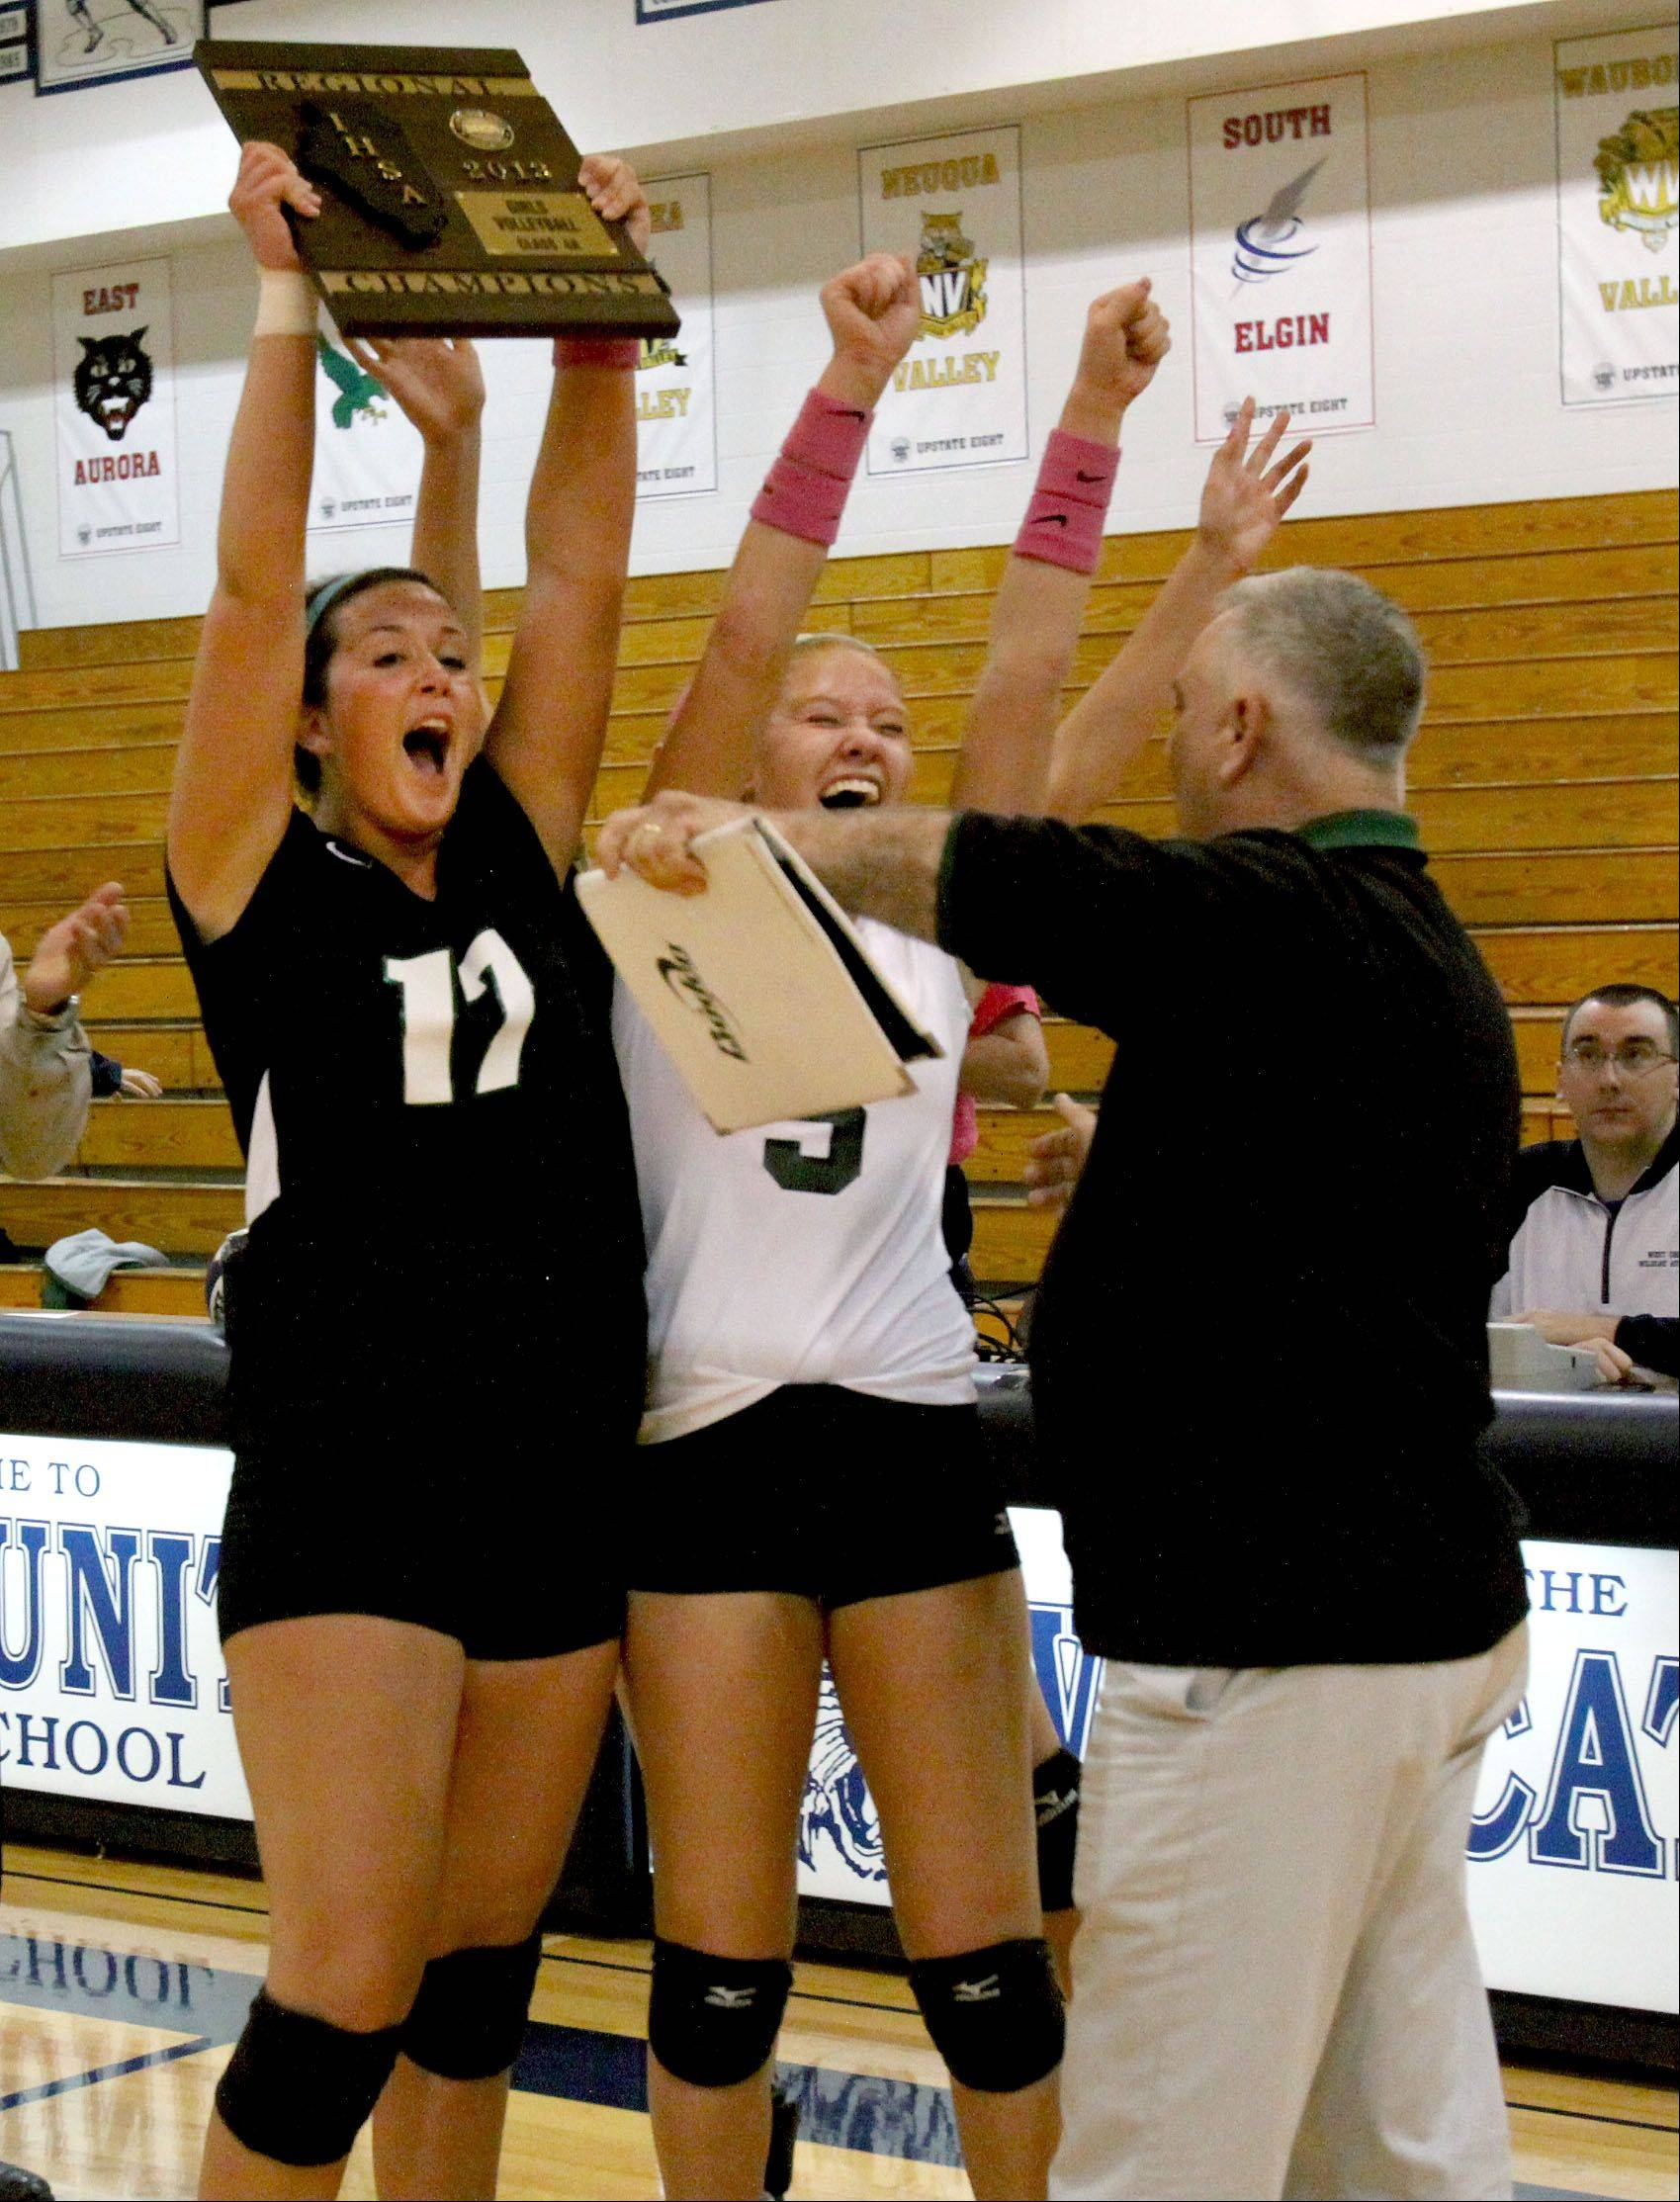 Caroline Jenkins, left, Meg DeMaar, right, and coach Peter Mastandrea of Glenbard West celebrate their win over Schaumburg in the Class 4A regional volleyball final in West Chicago on Thursday.